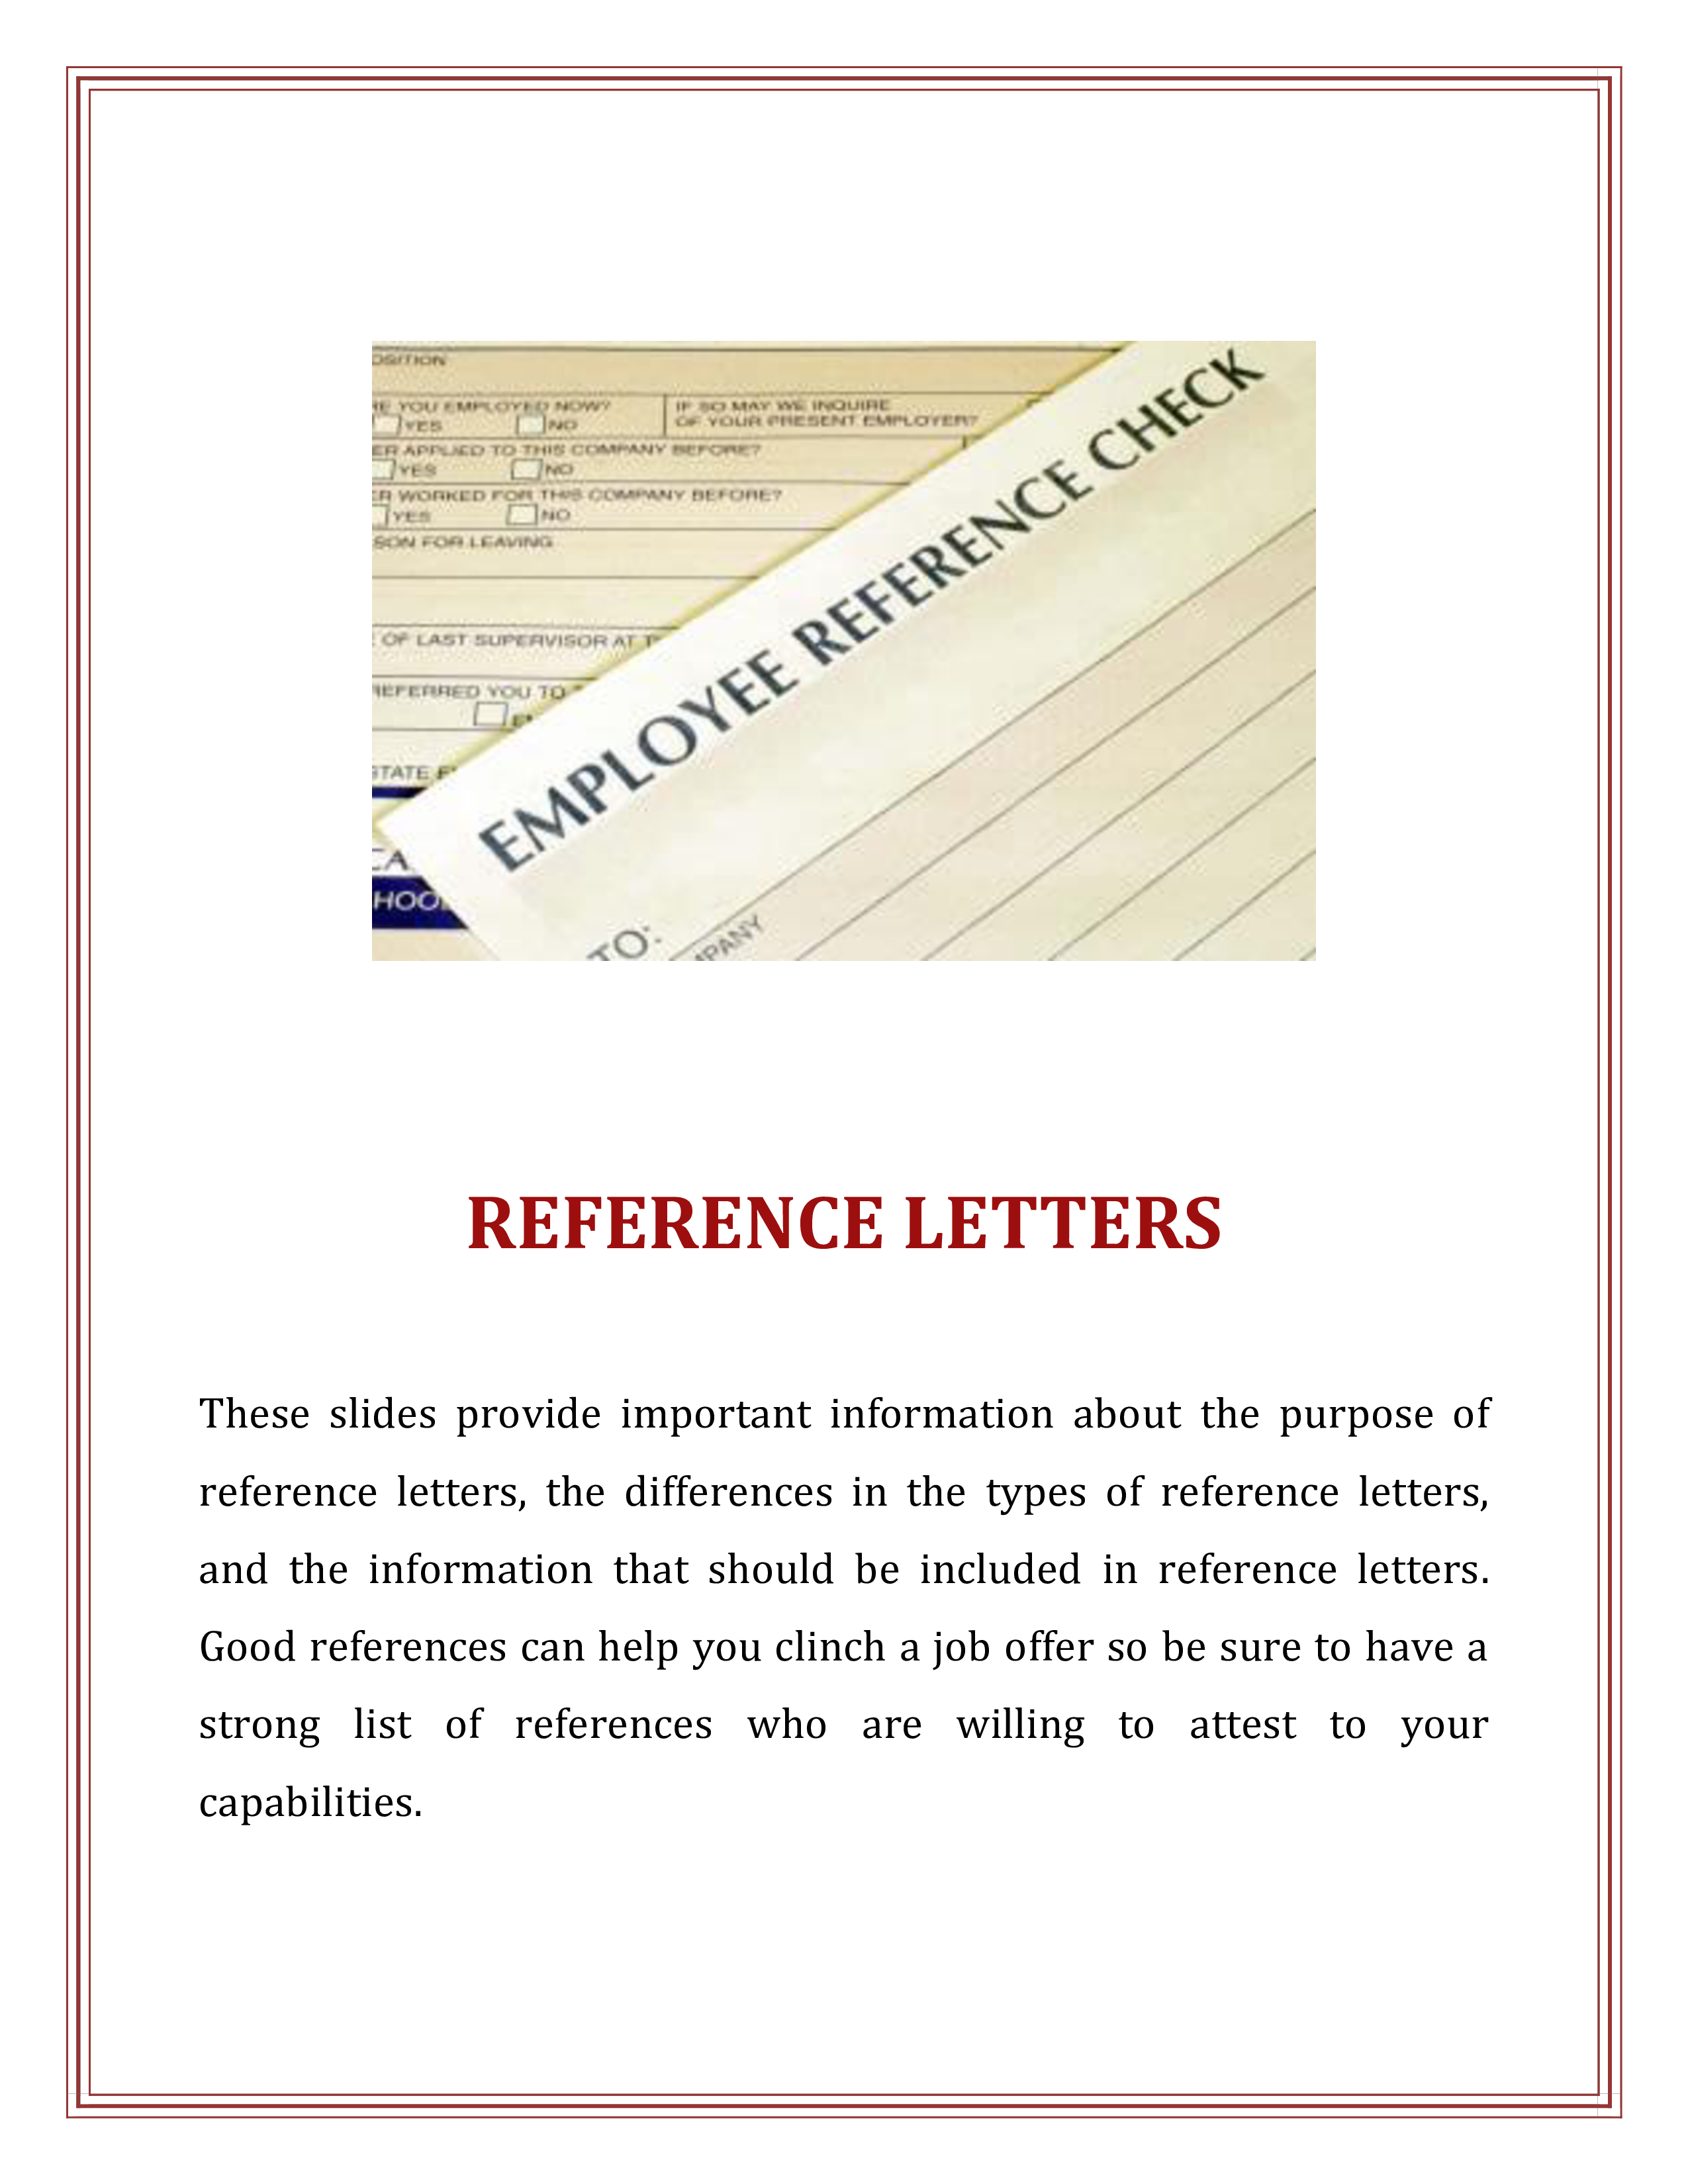 Job Reference Letter Example from www.allbusinesstemplates.com